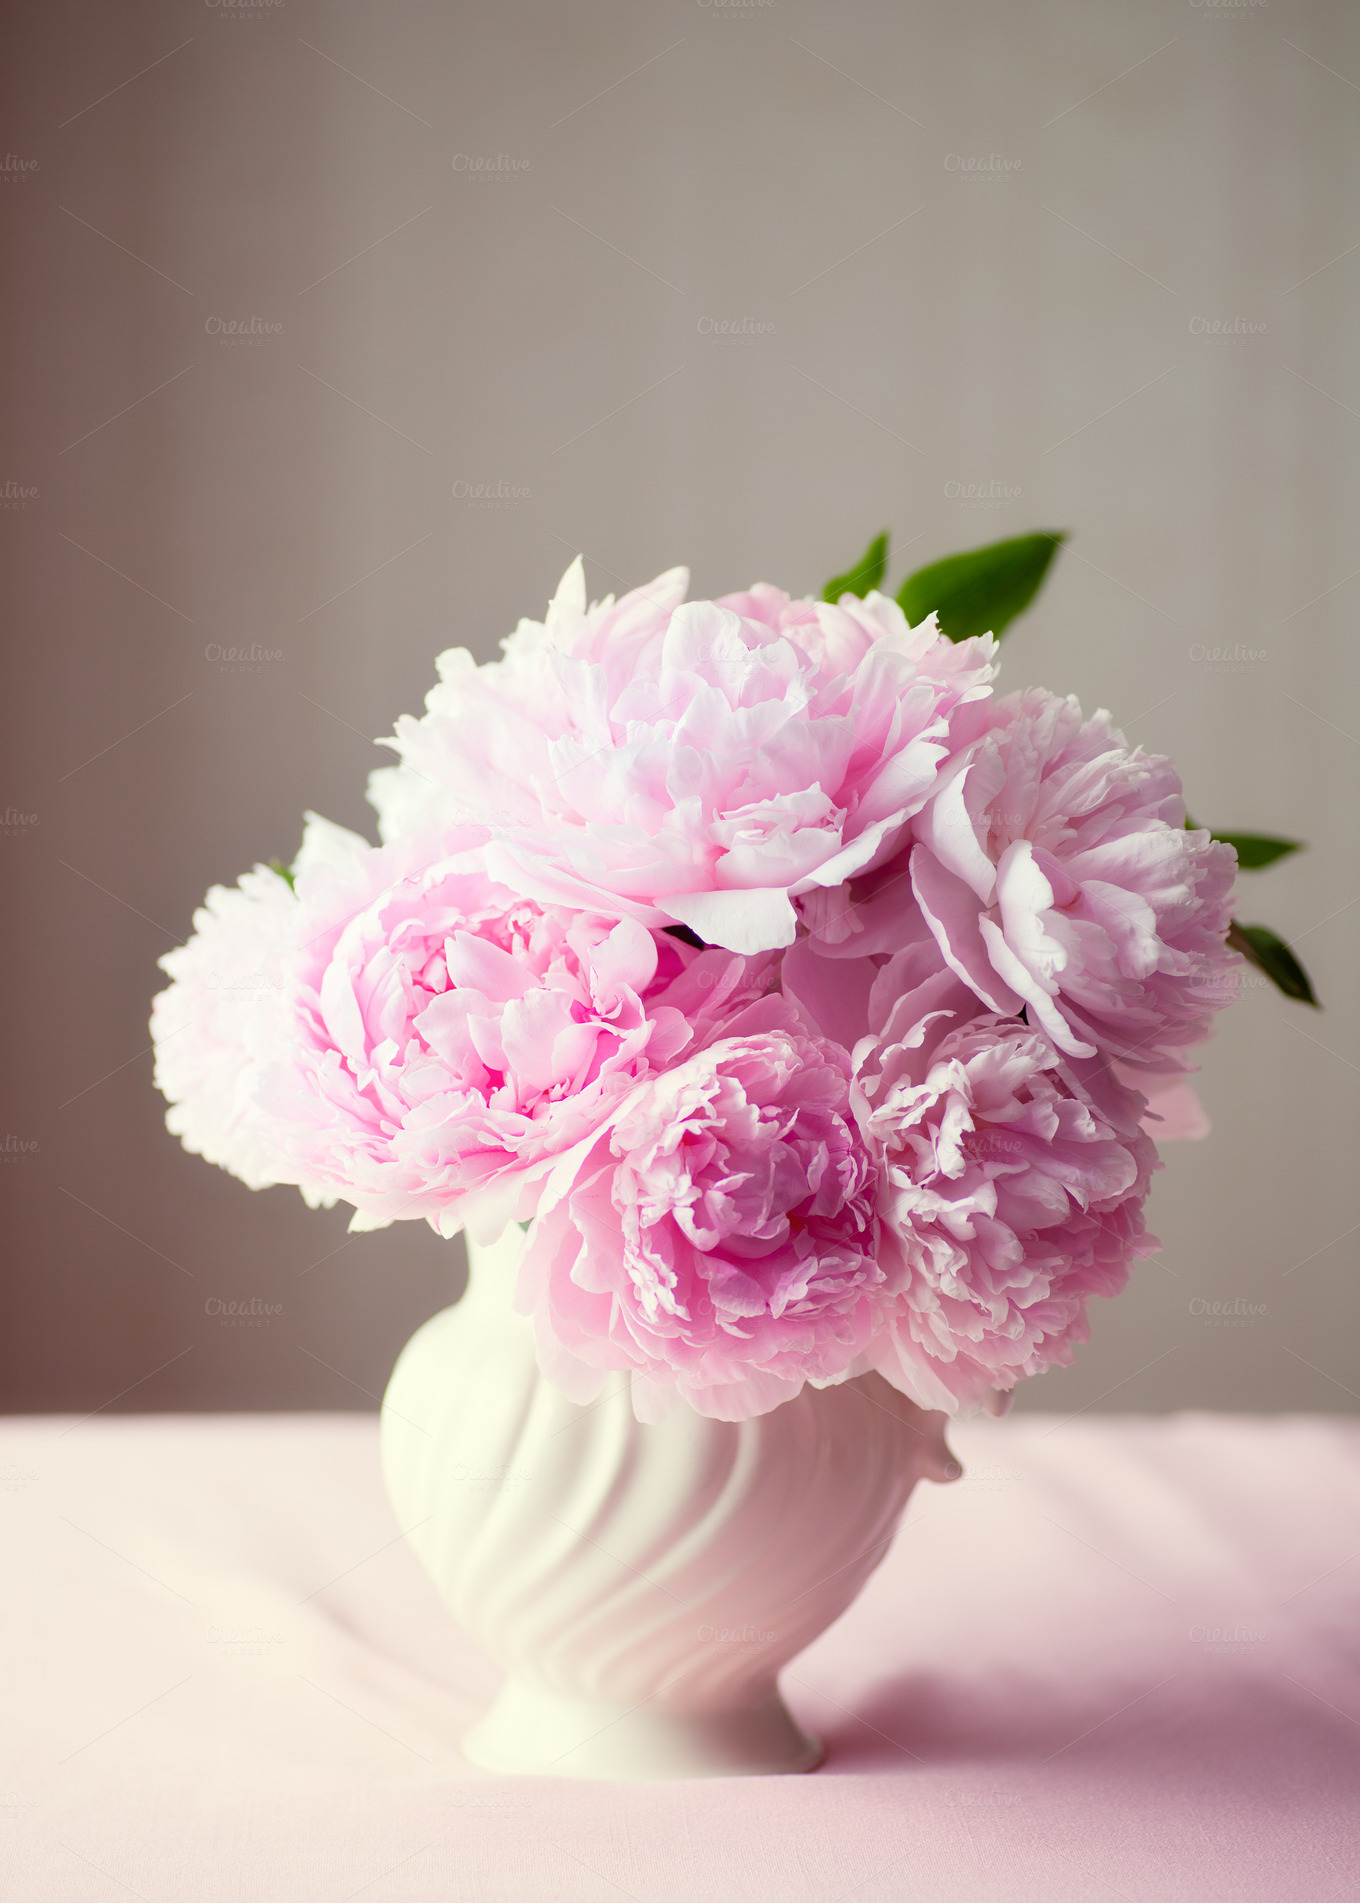 Fresh Cut Pink Peonies In A Vase Nature Photos On